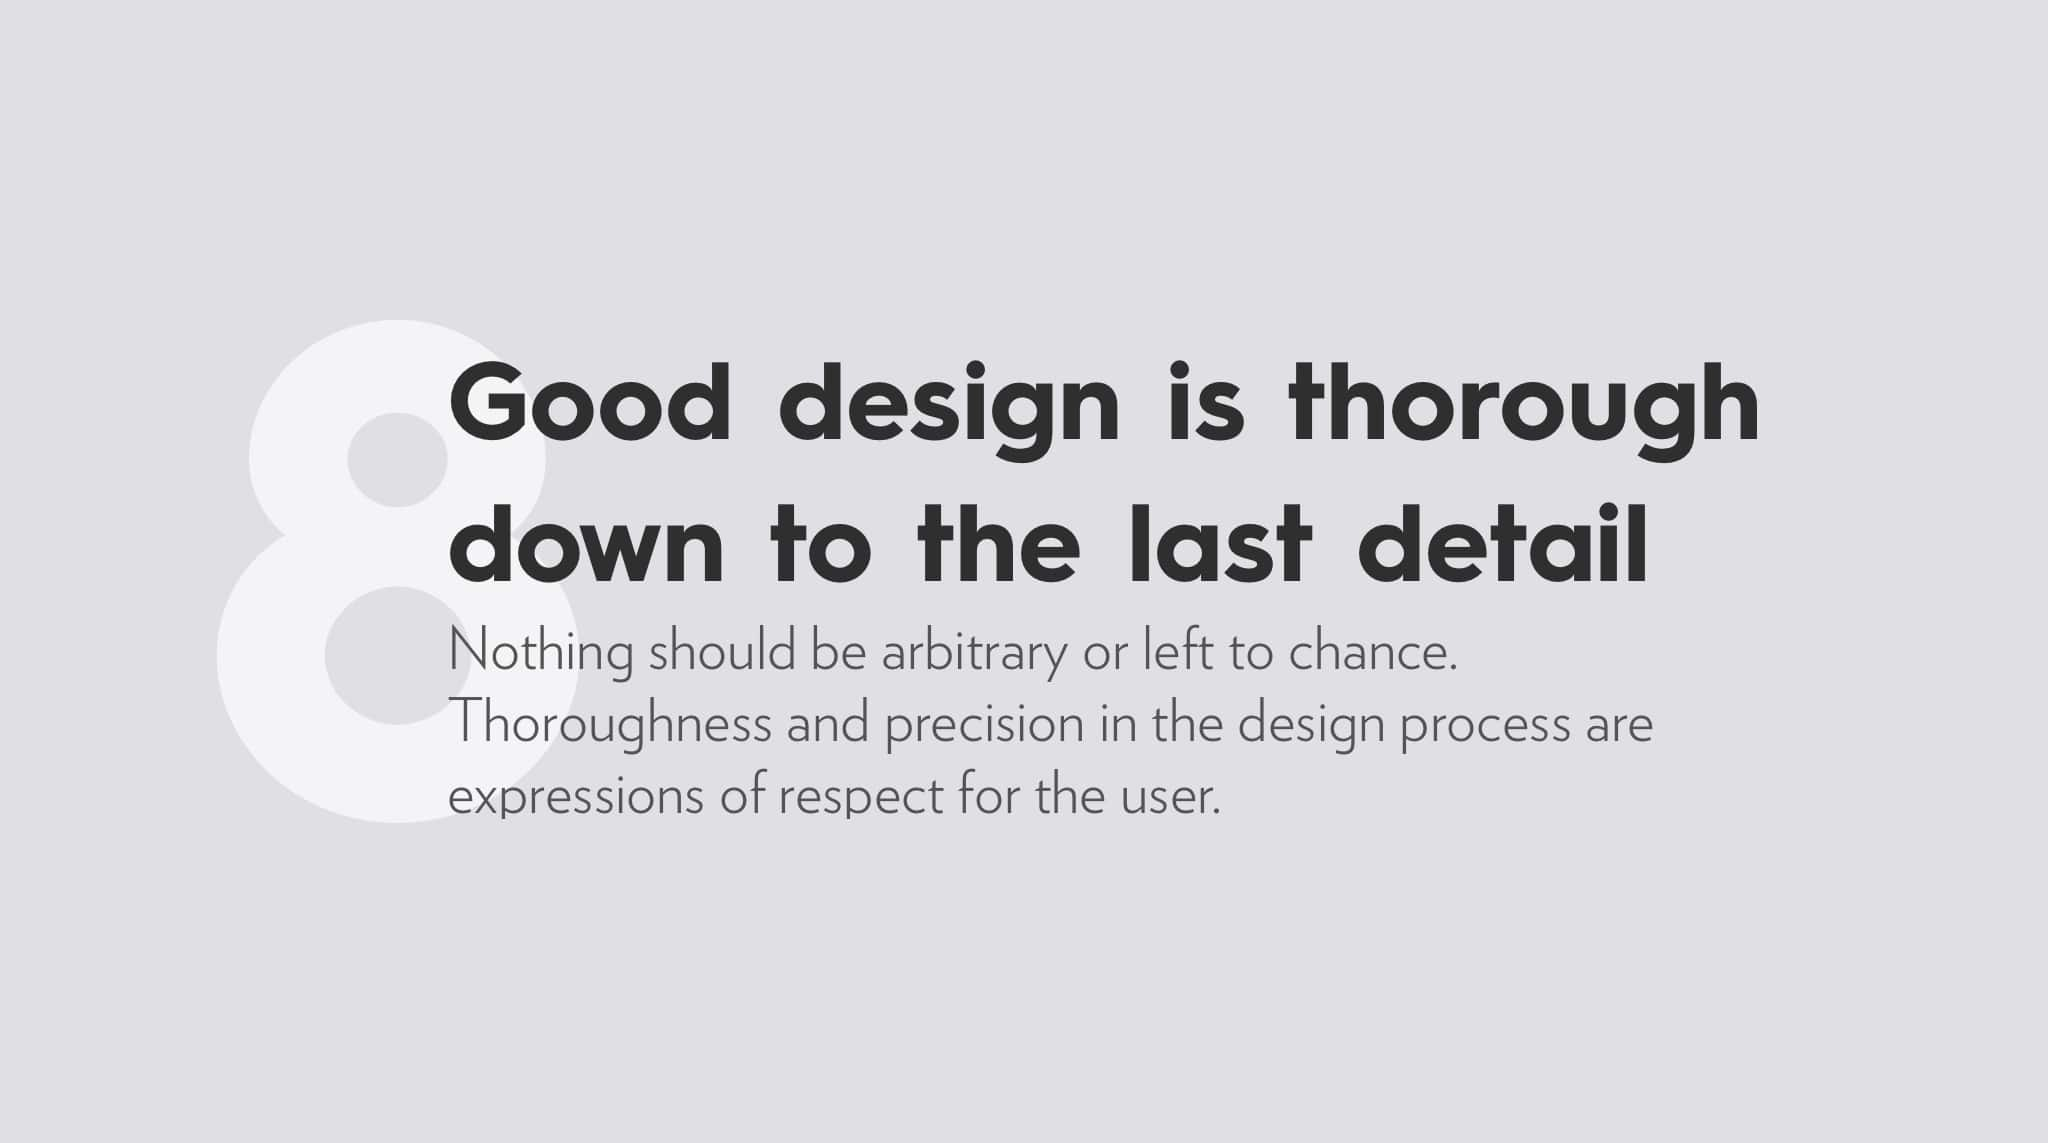 Ten Principles For Good Design by Dieter Rams, good design is thorough down to the last detail.